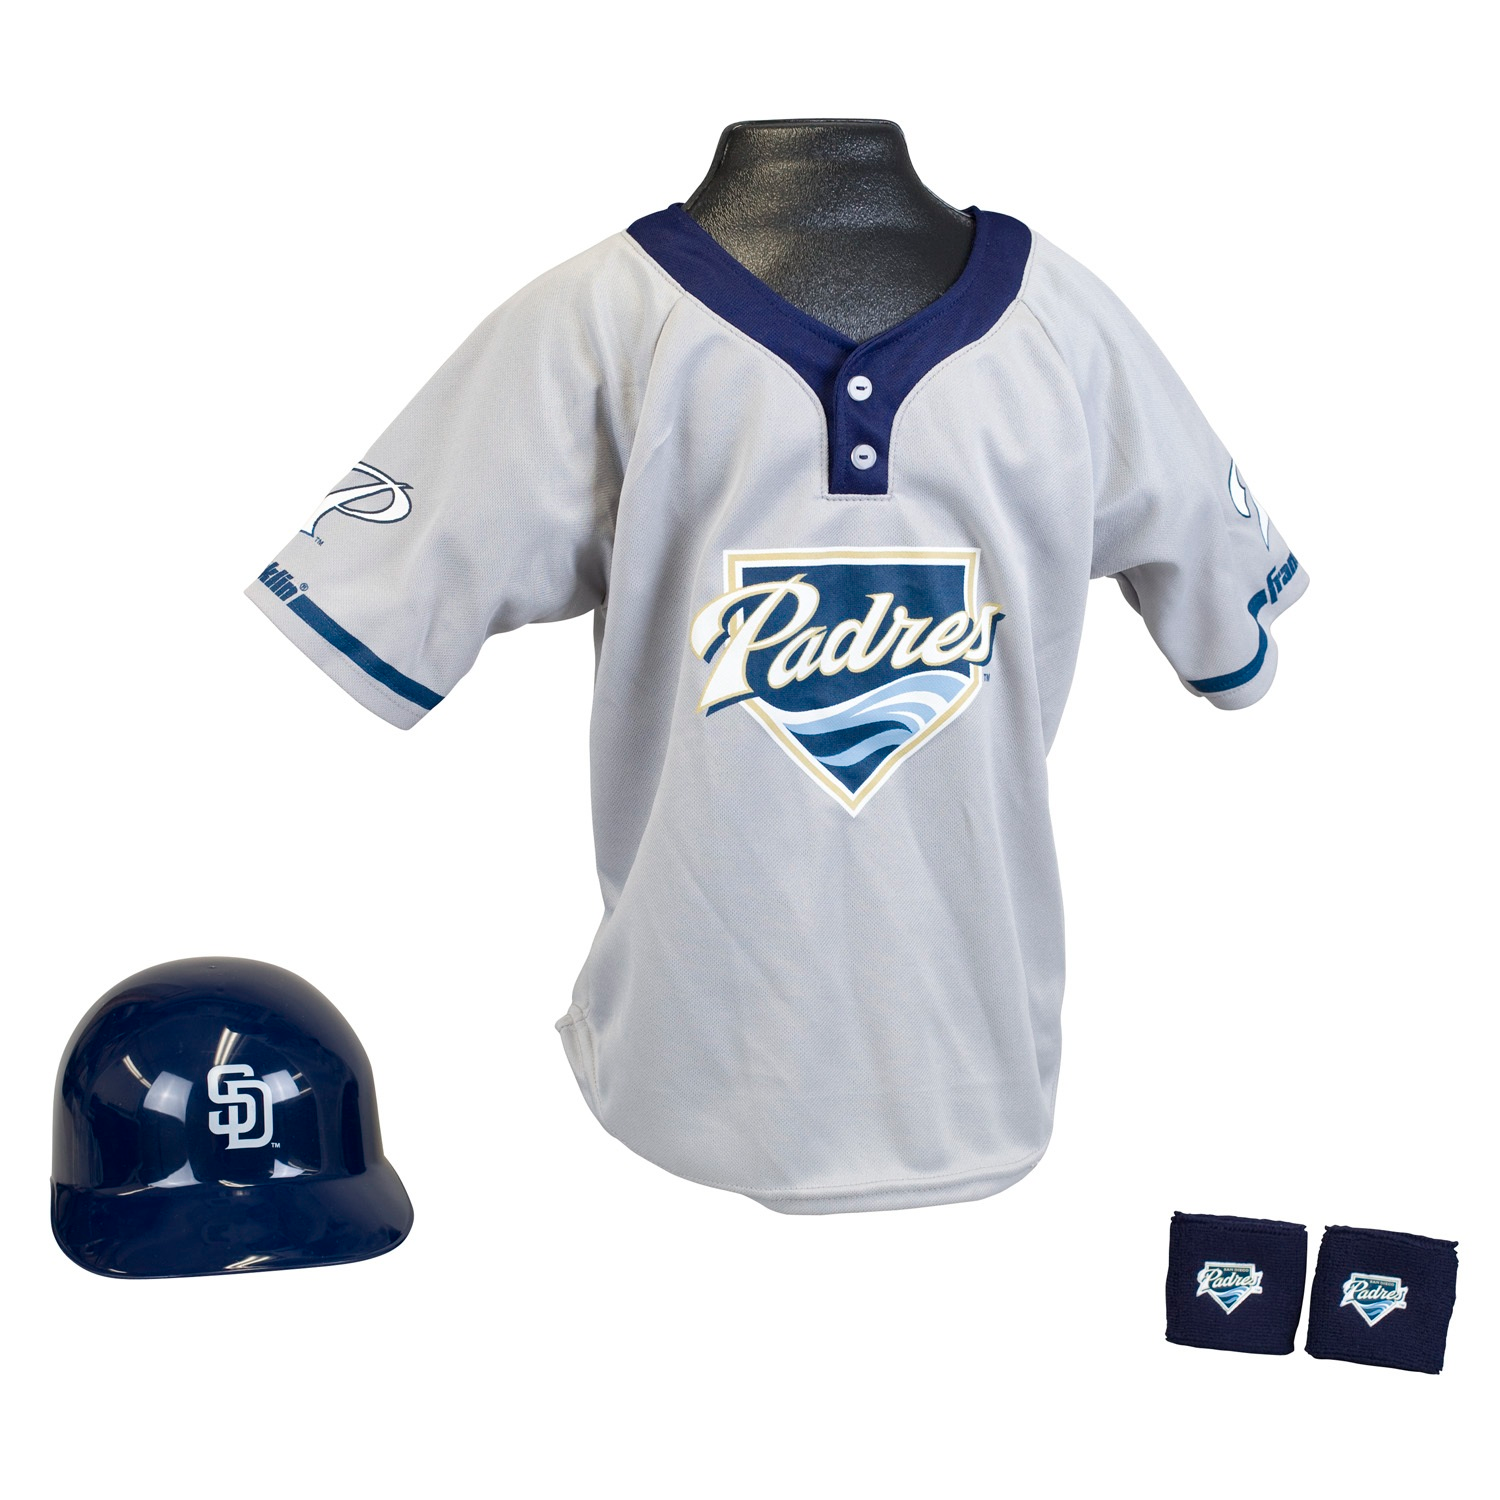 San Diego Padres MLB Youth Uniform Set Halloween Costume